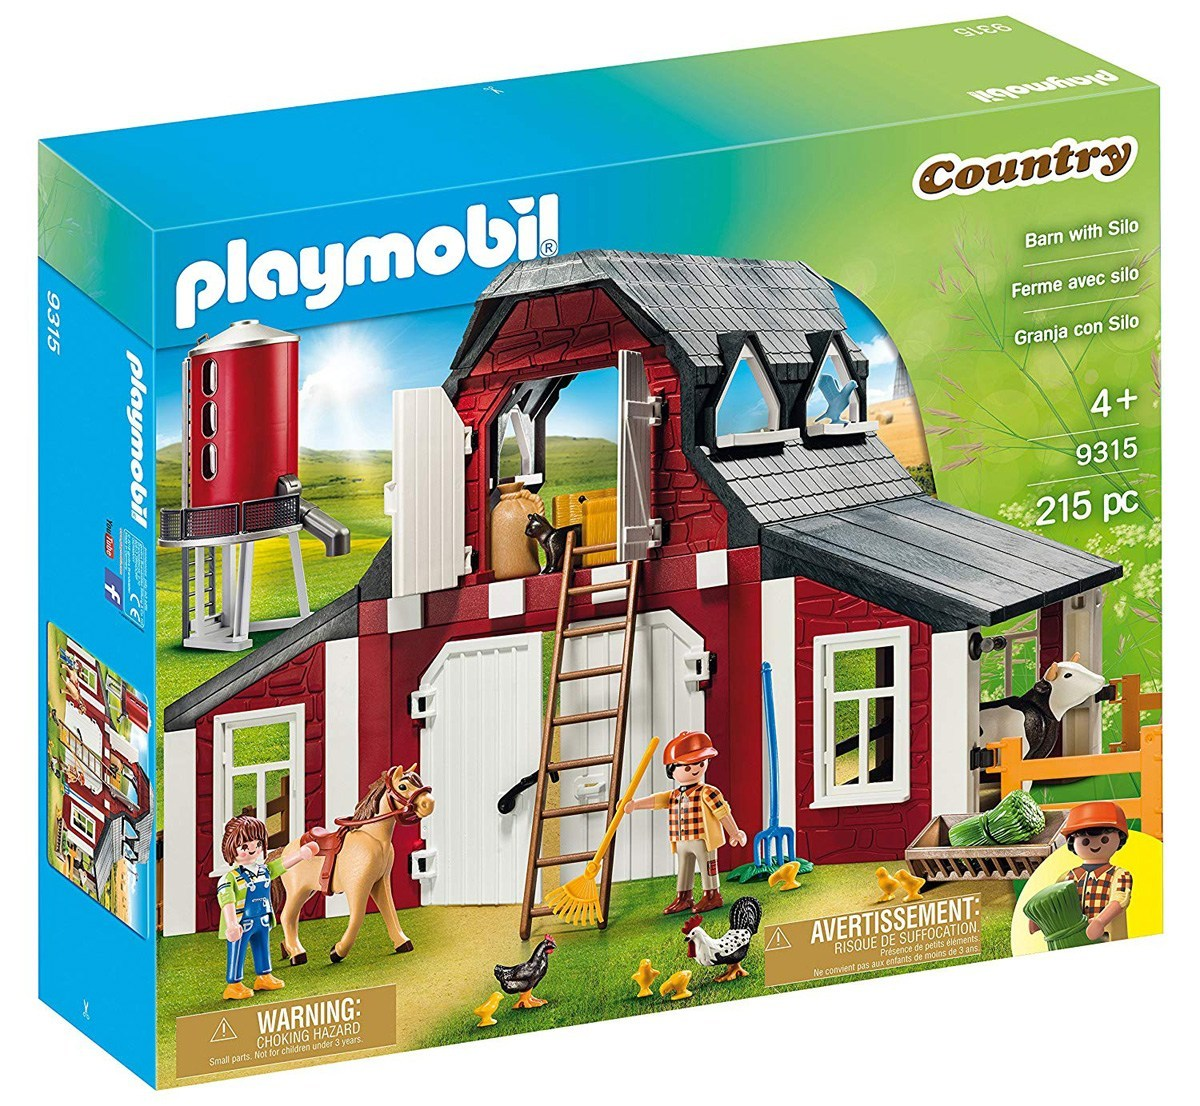 Playmobil Country Barn and Silo